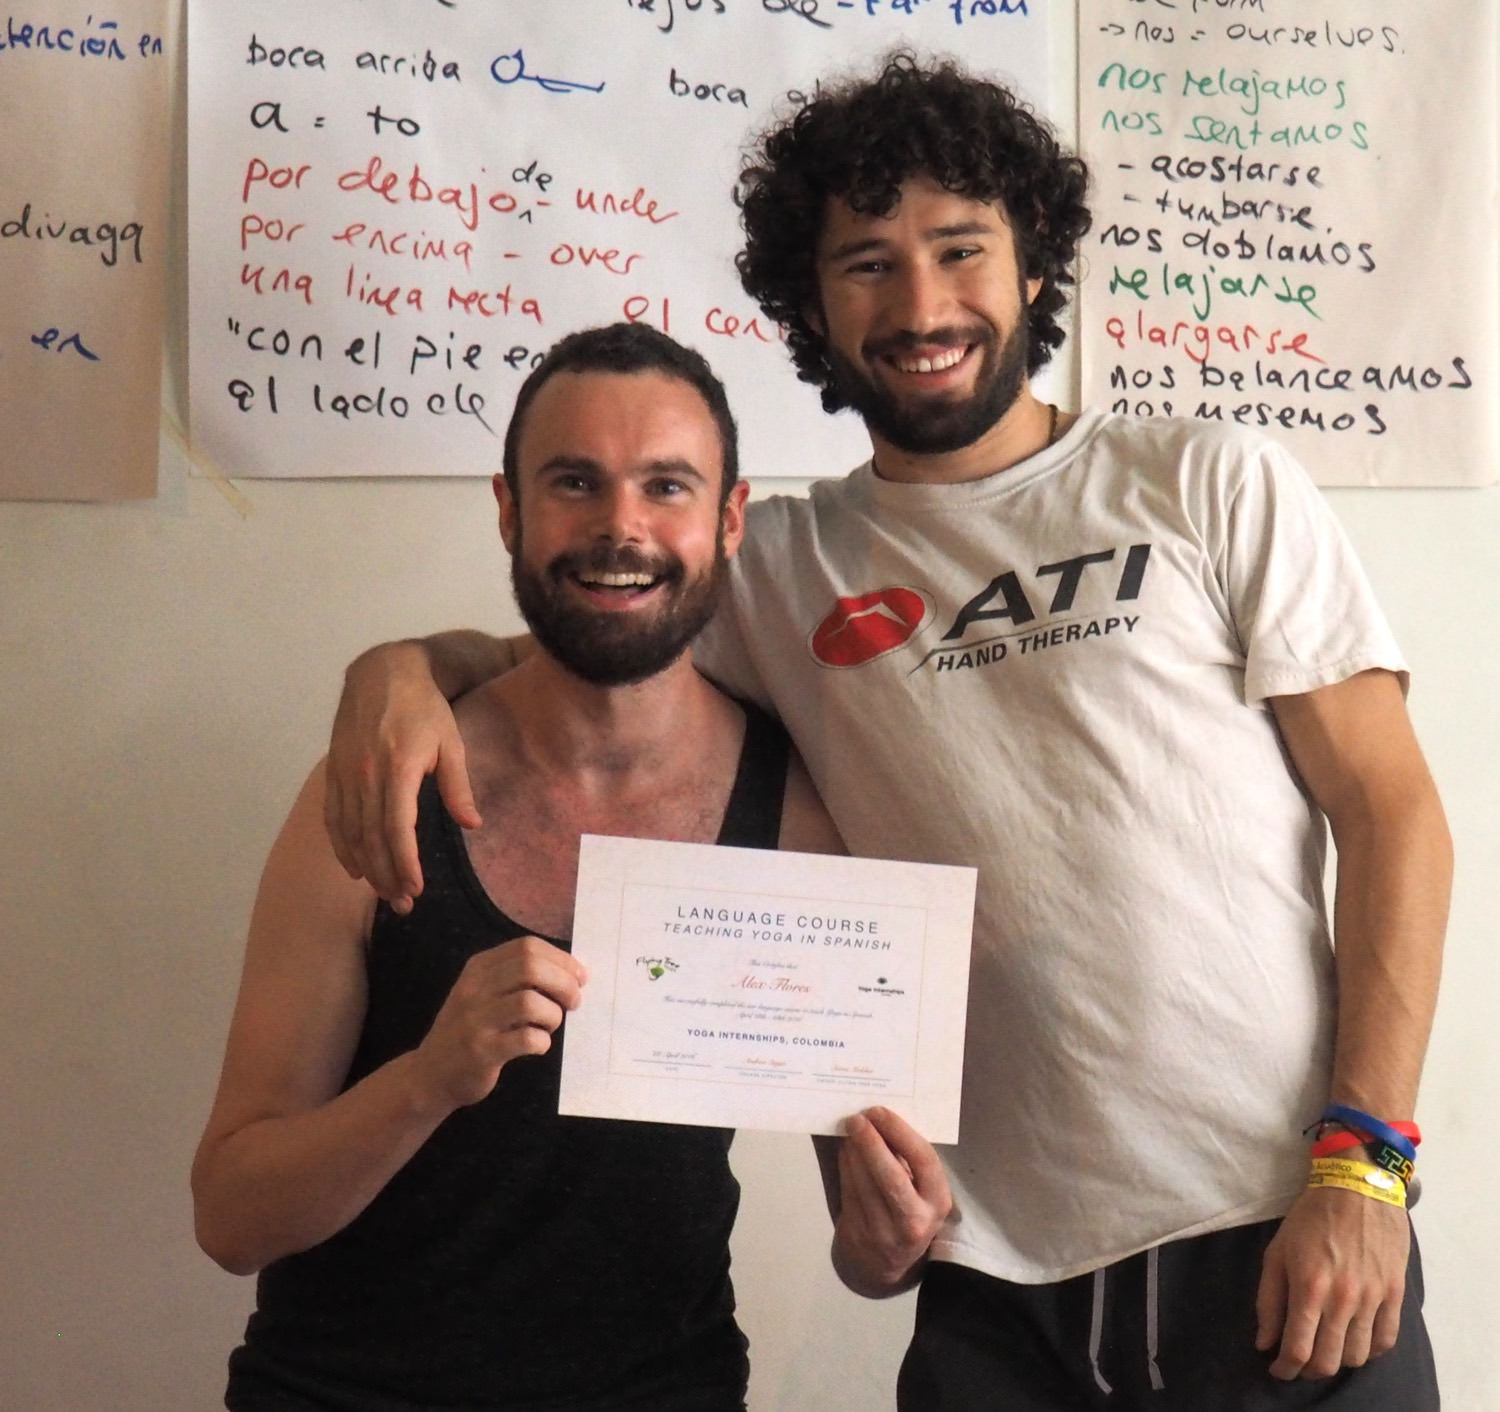 Yoga Internship Program, Medellín, Colombia, South America - teach and work in a yoga studio - continuing education 4